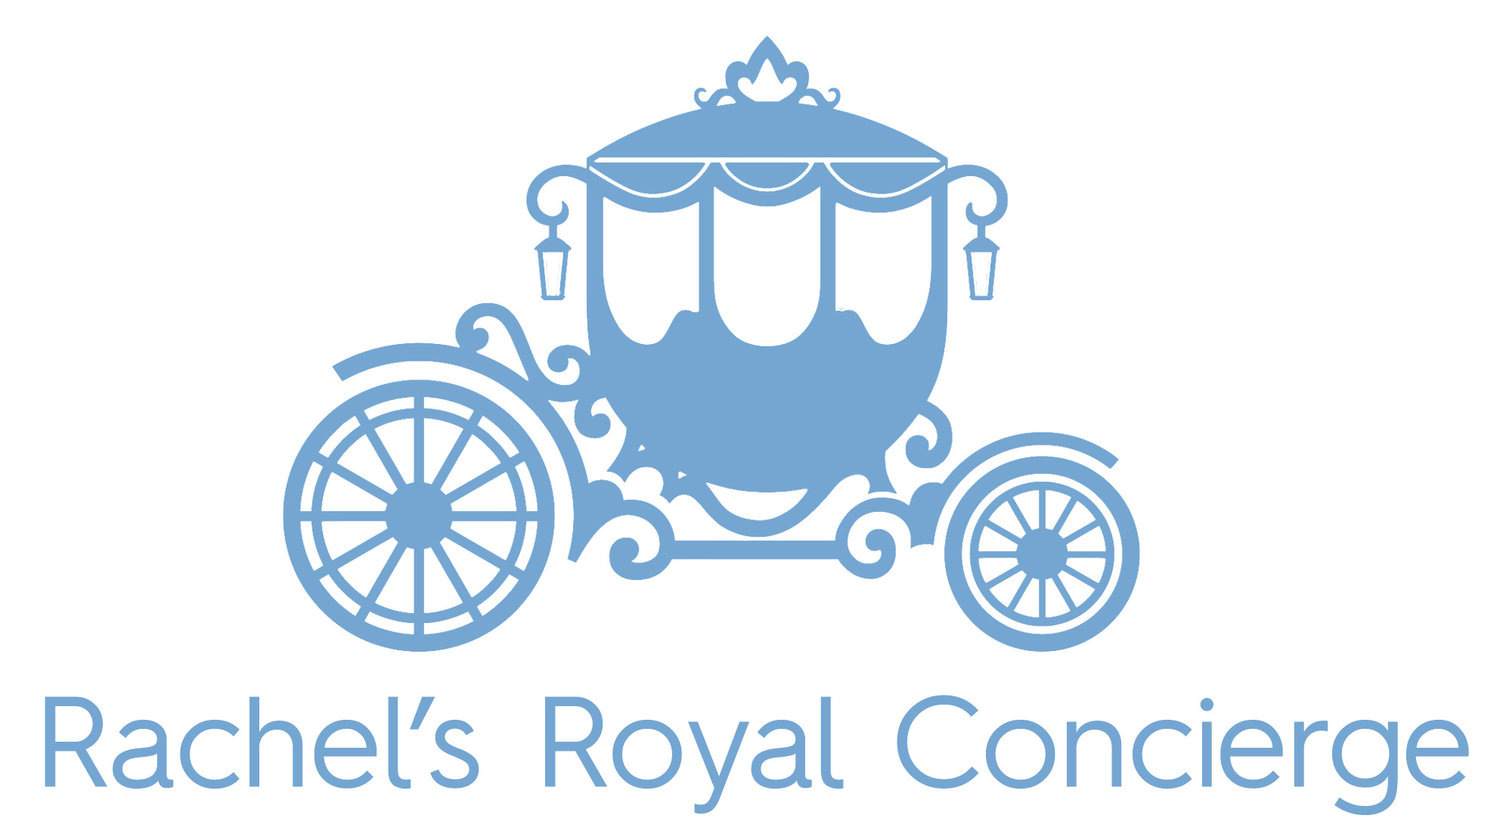 Rachel's Royal Concierge